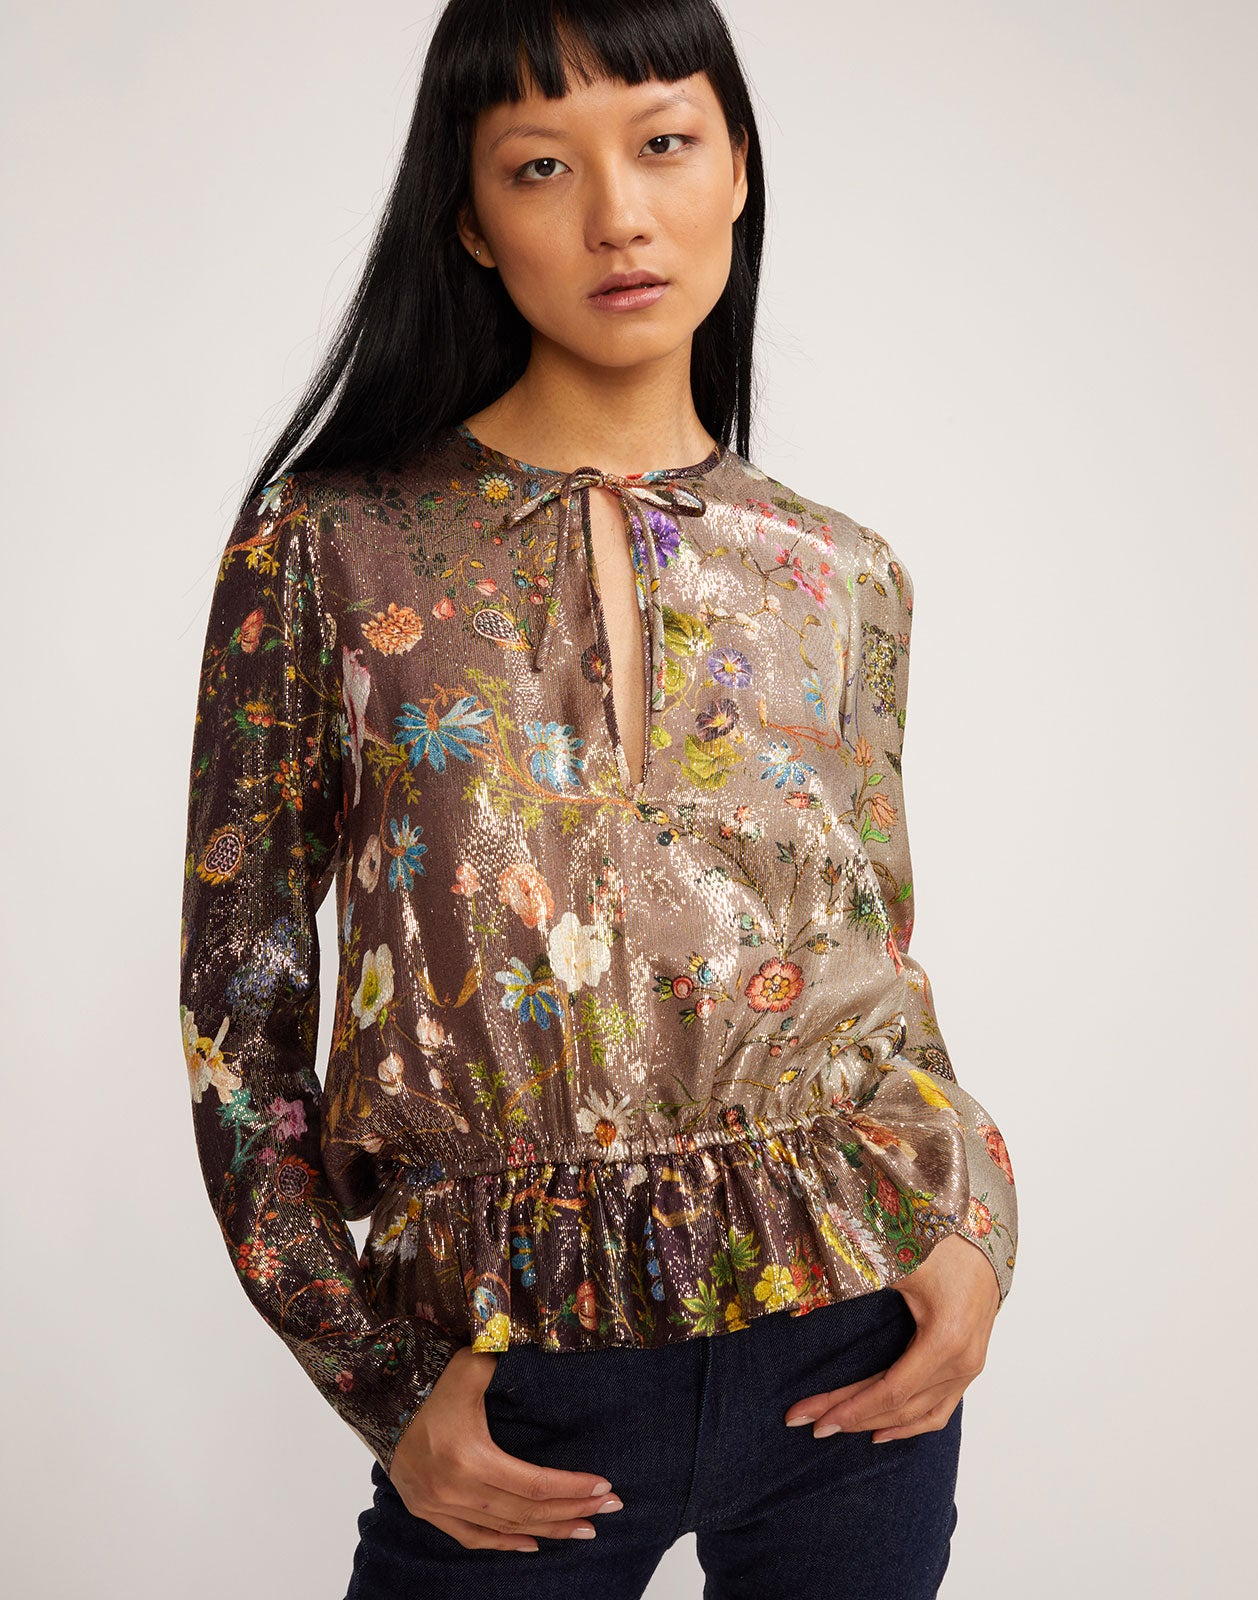 Front view of metallic floral blouse with ruching.